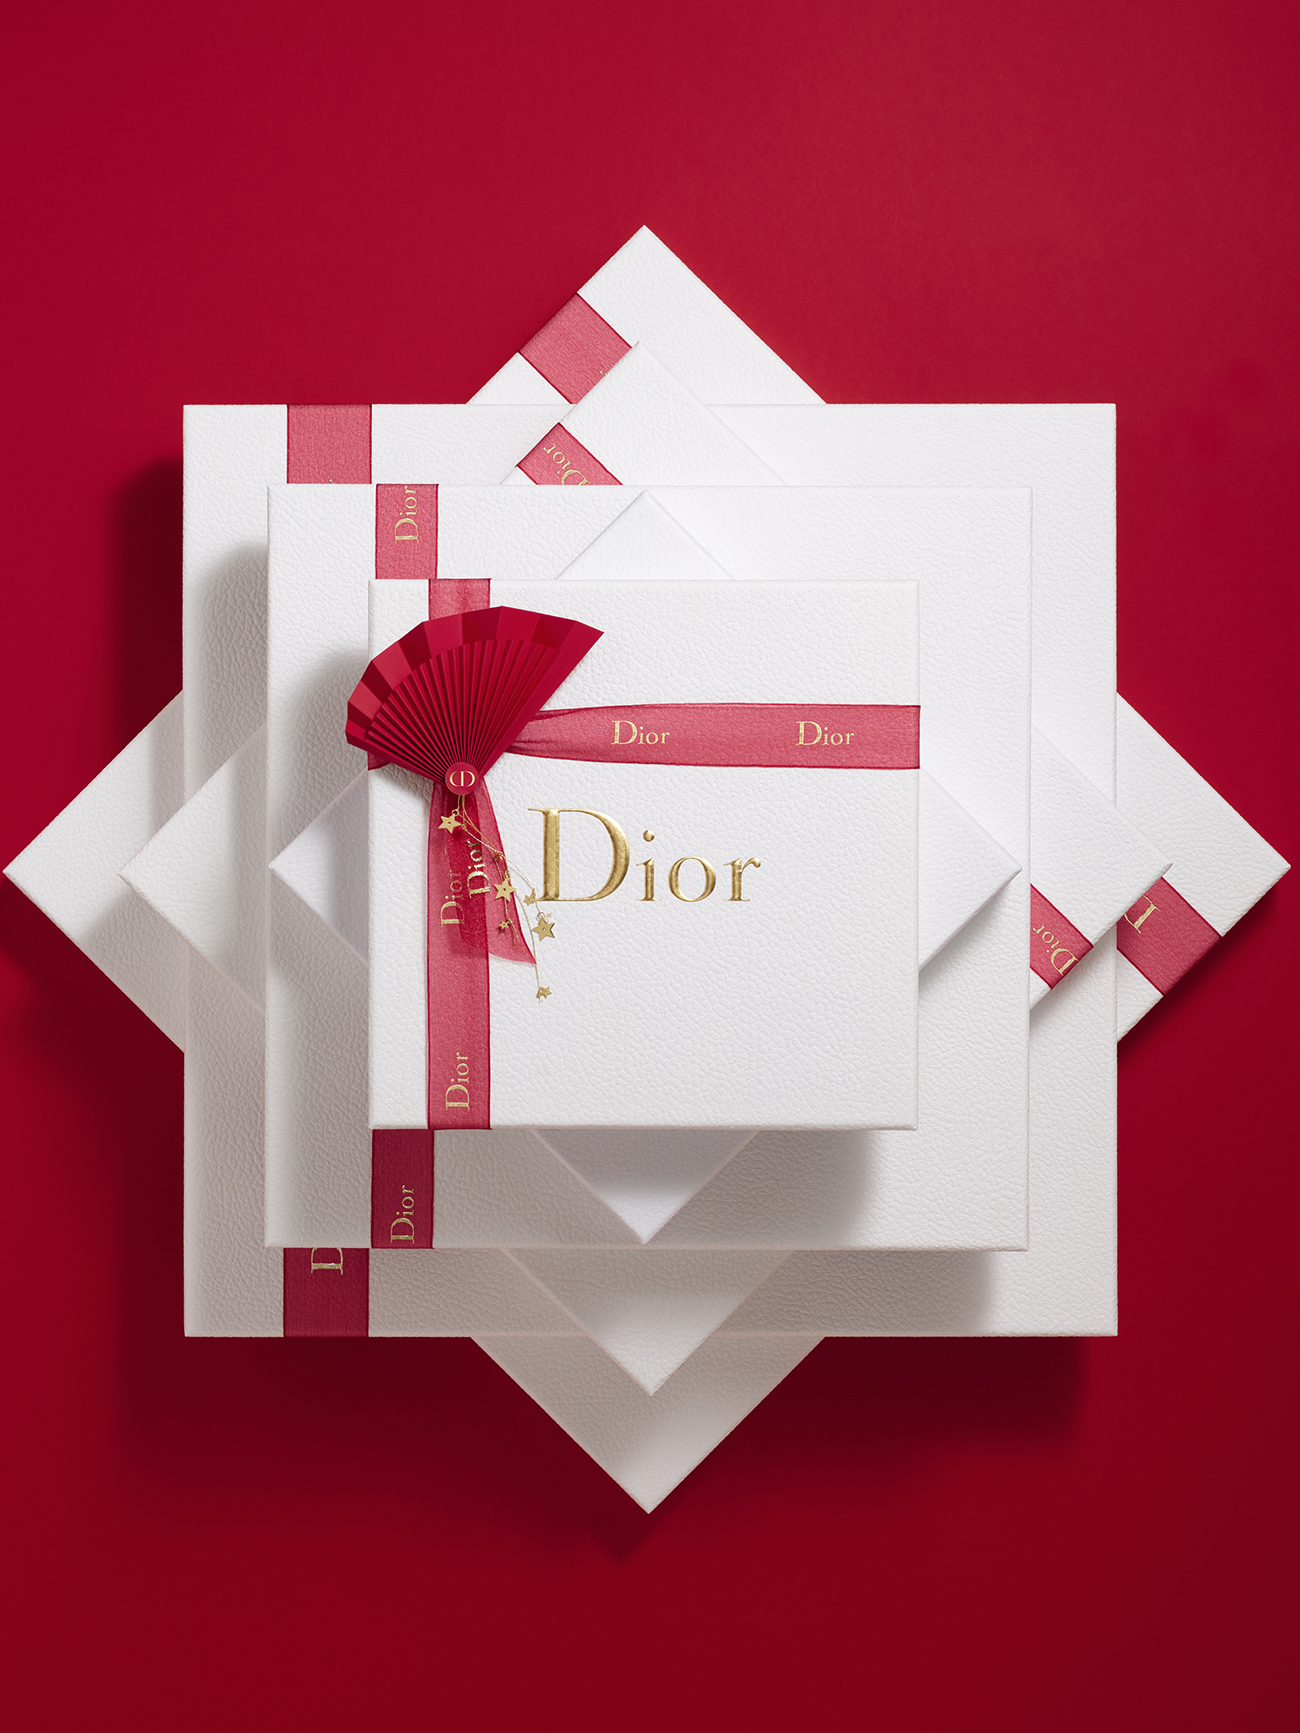 Dior studio design Maud Vantours set design paper art Paris